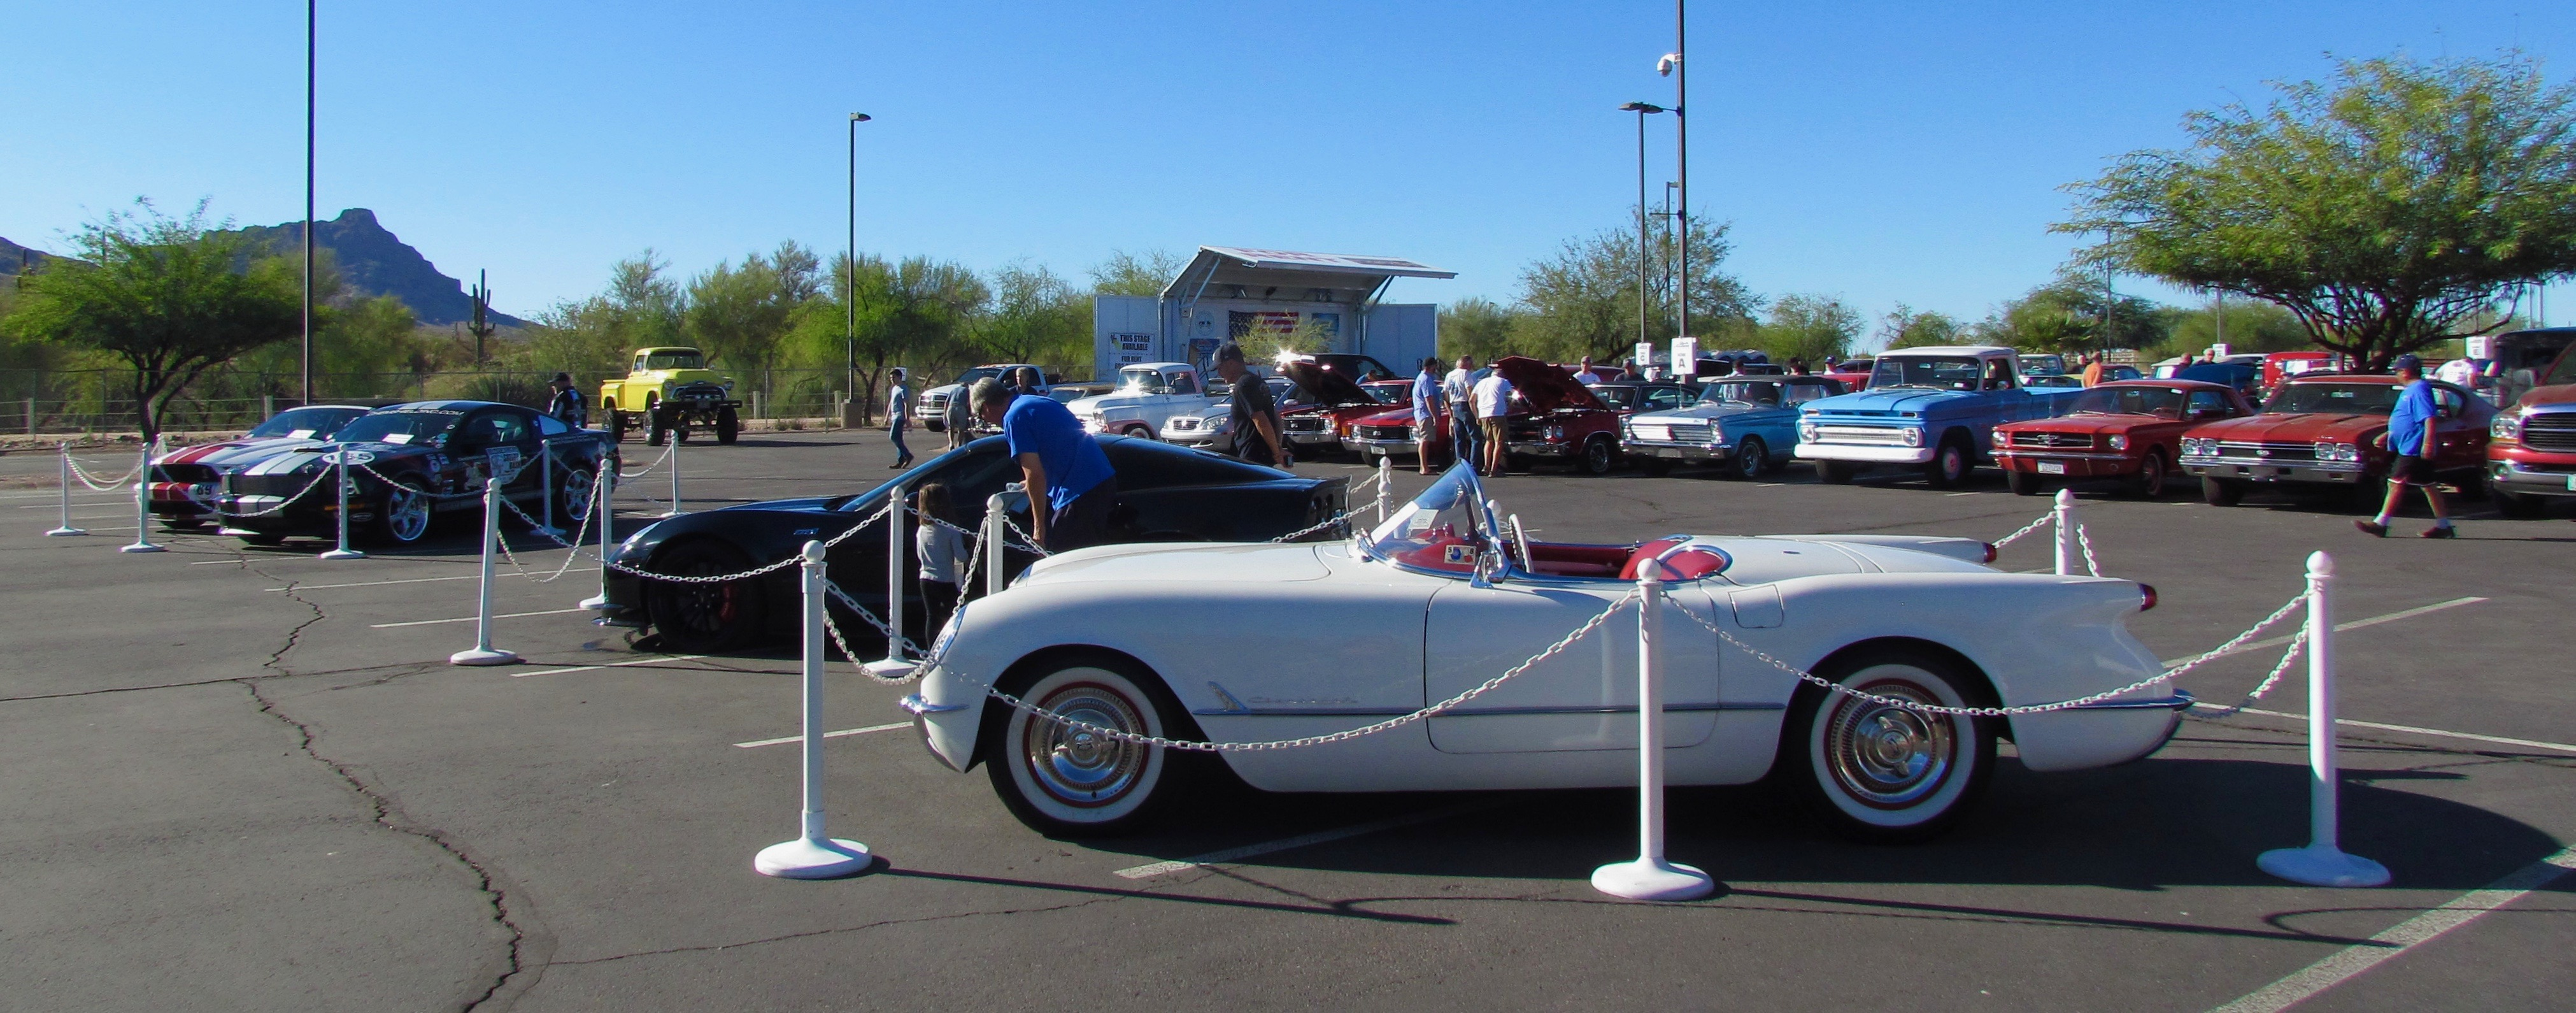 car auctions, Your guide to Arizona's 'Magnificent 7' collector car auctions, ClassicCars.com Journal